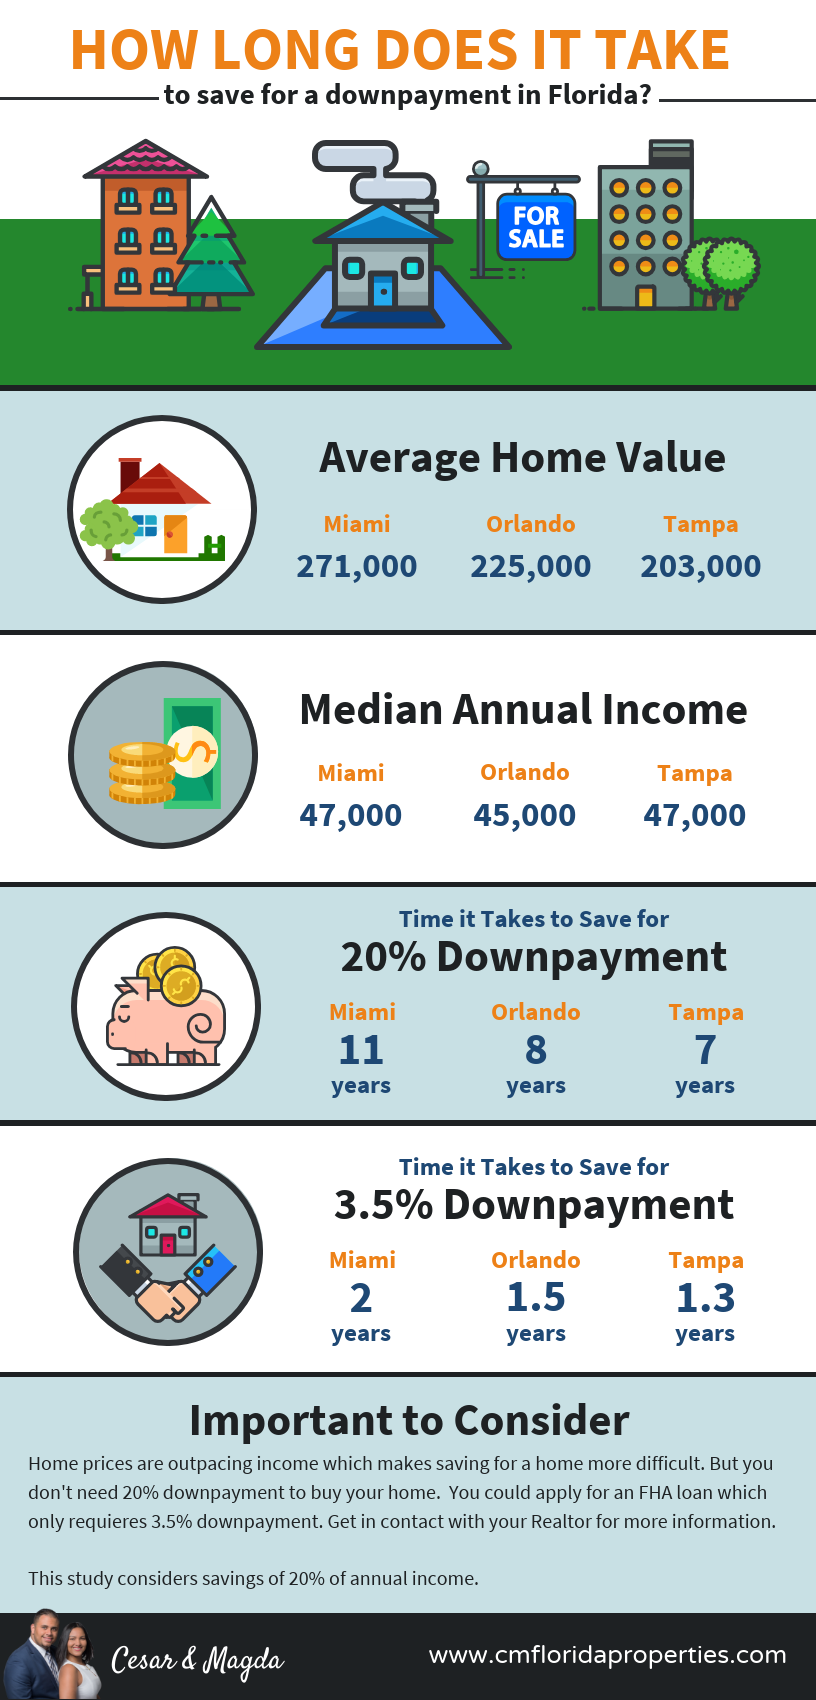 How long does it take to save for a downpayment for a home